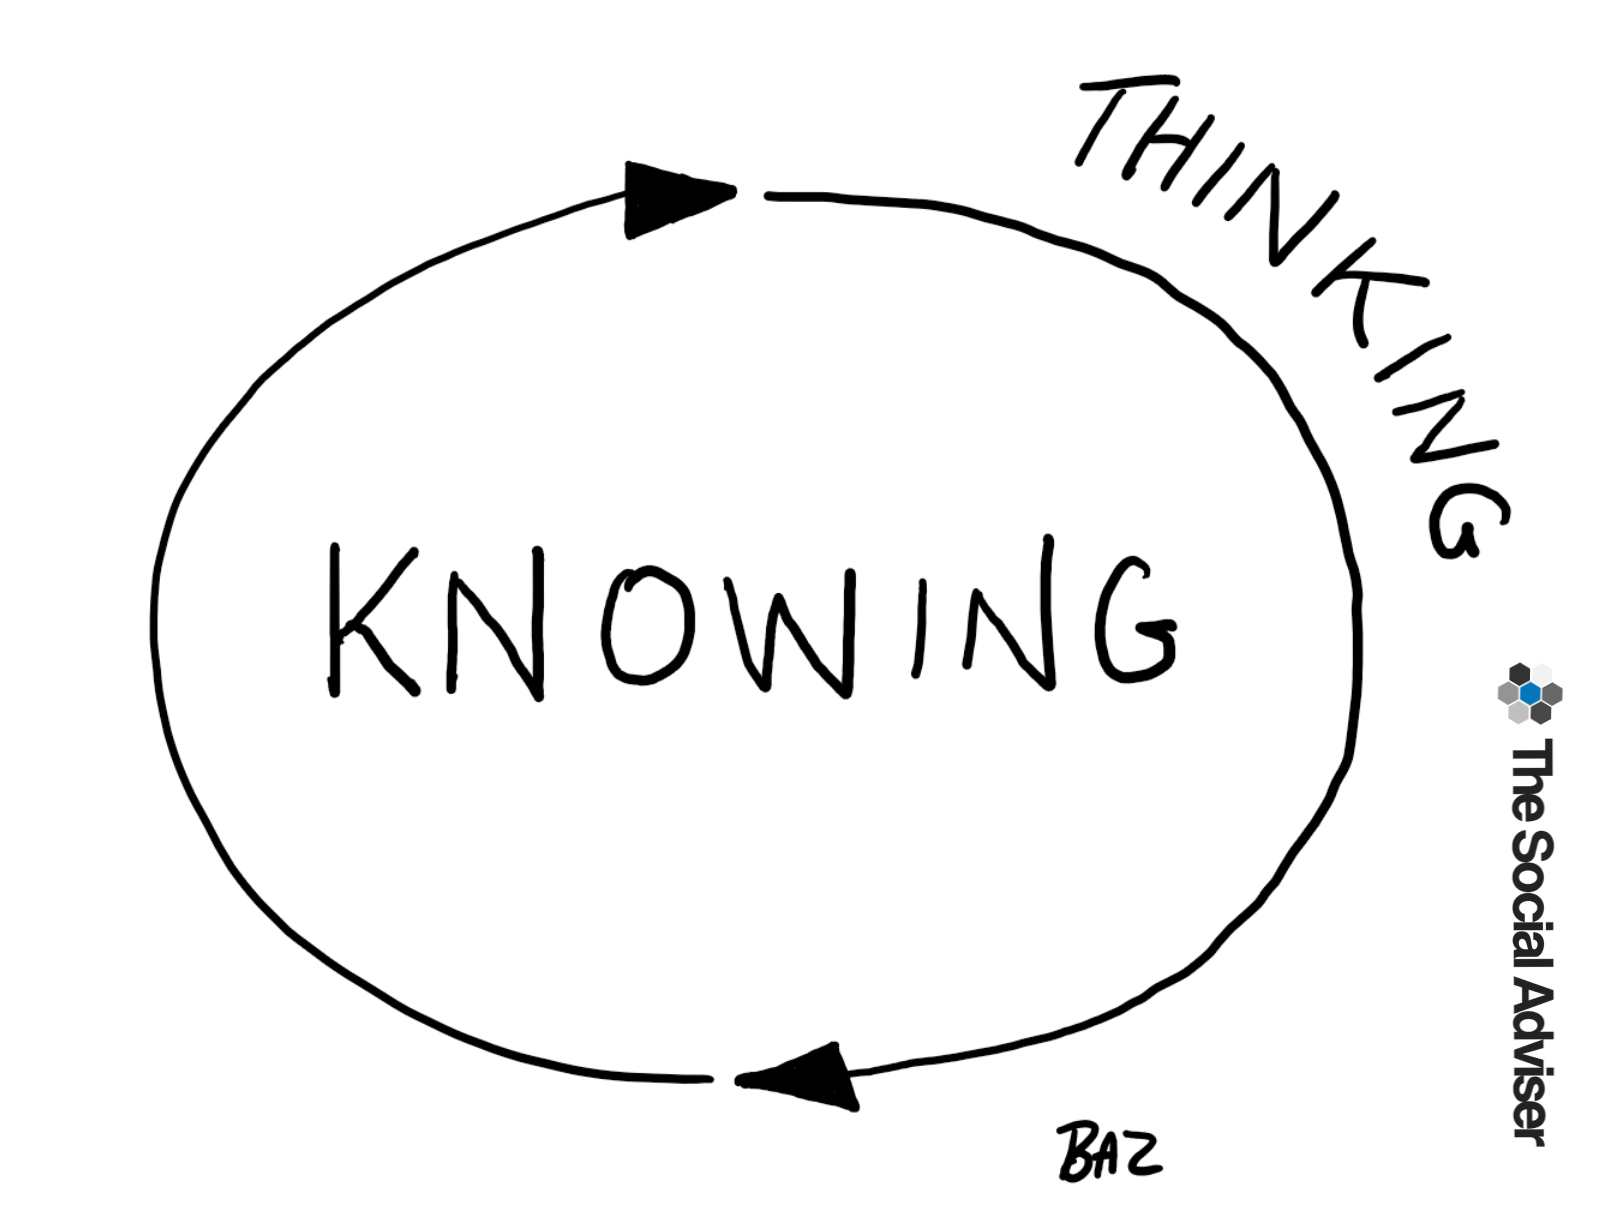 Thinking vs Knowing